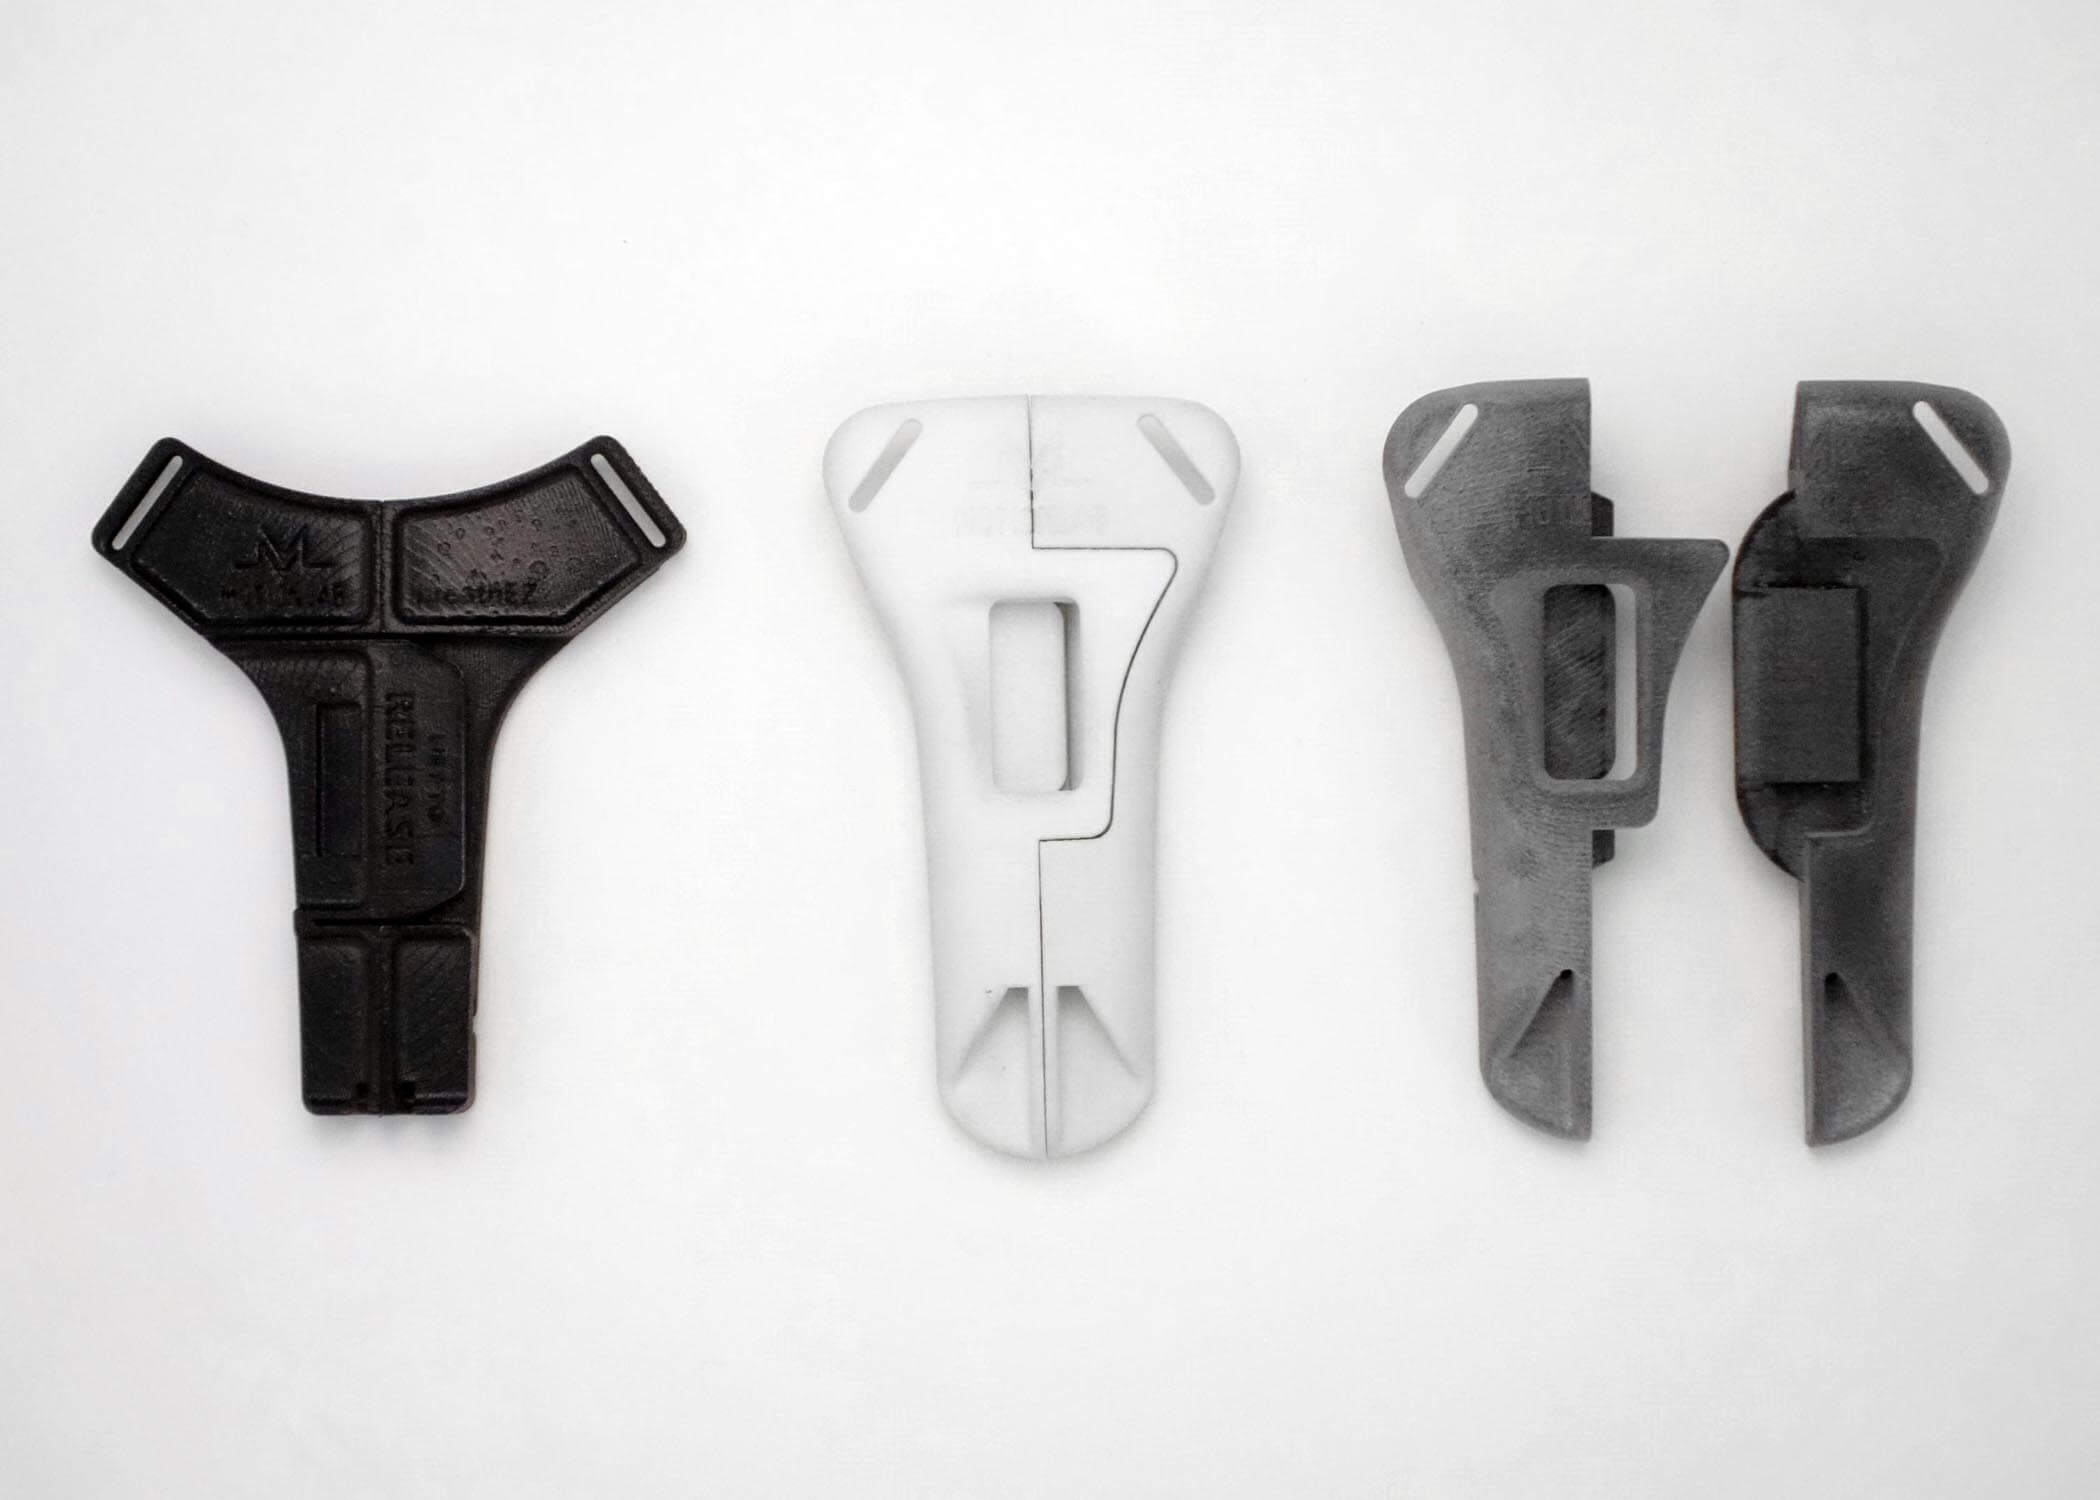 Motionlab active commute bag product design buckle prototyping